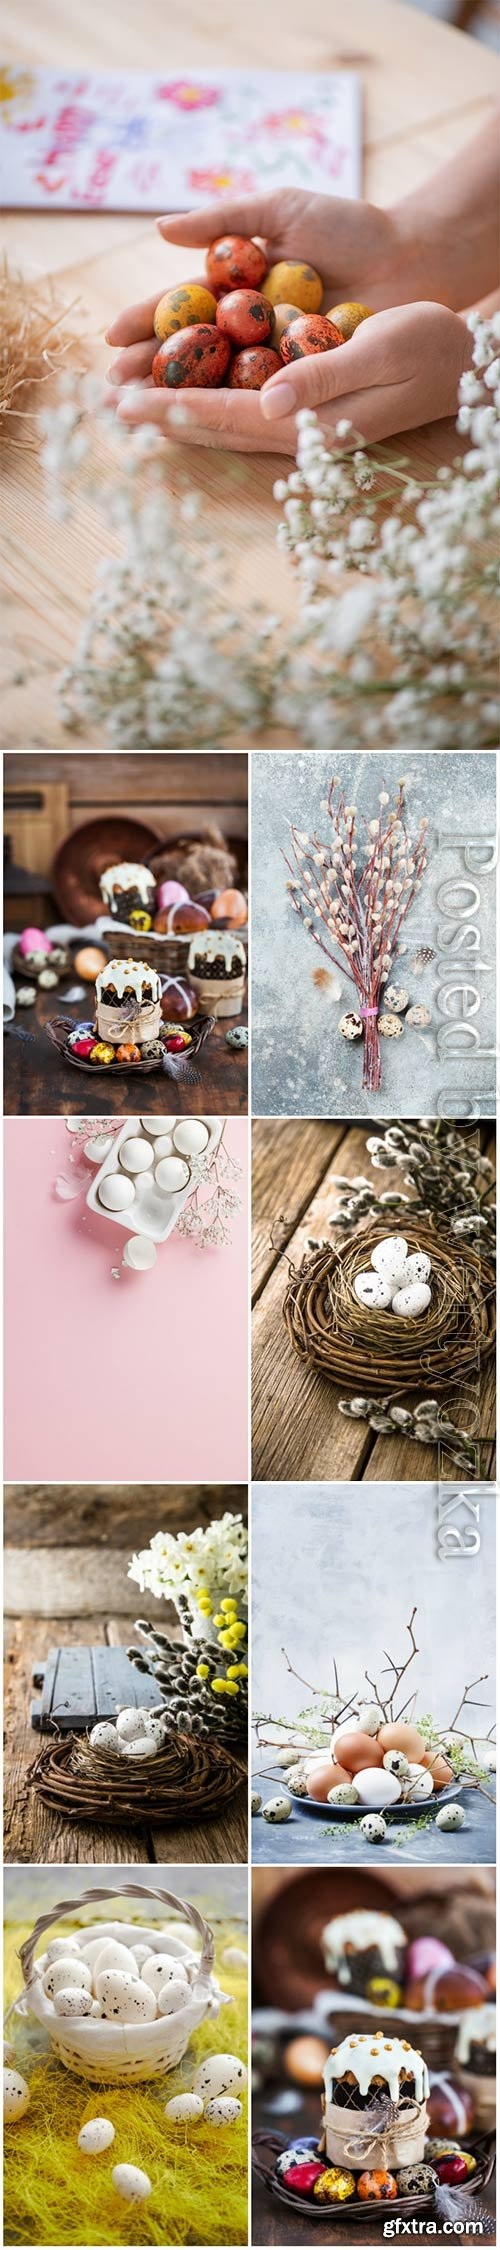 Happy Easter stock photo, Easter eggs, spring flowers # 12